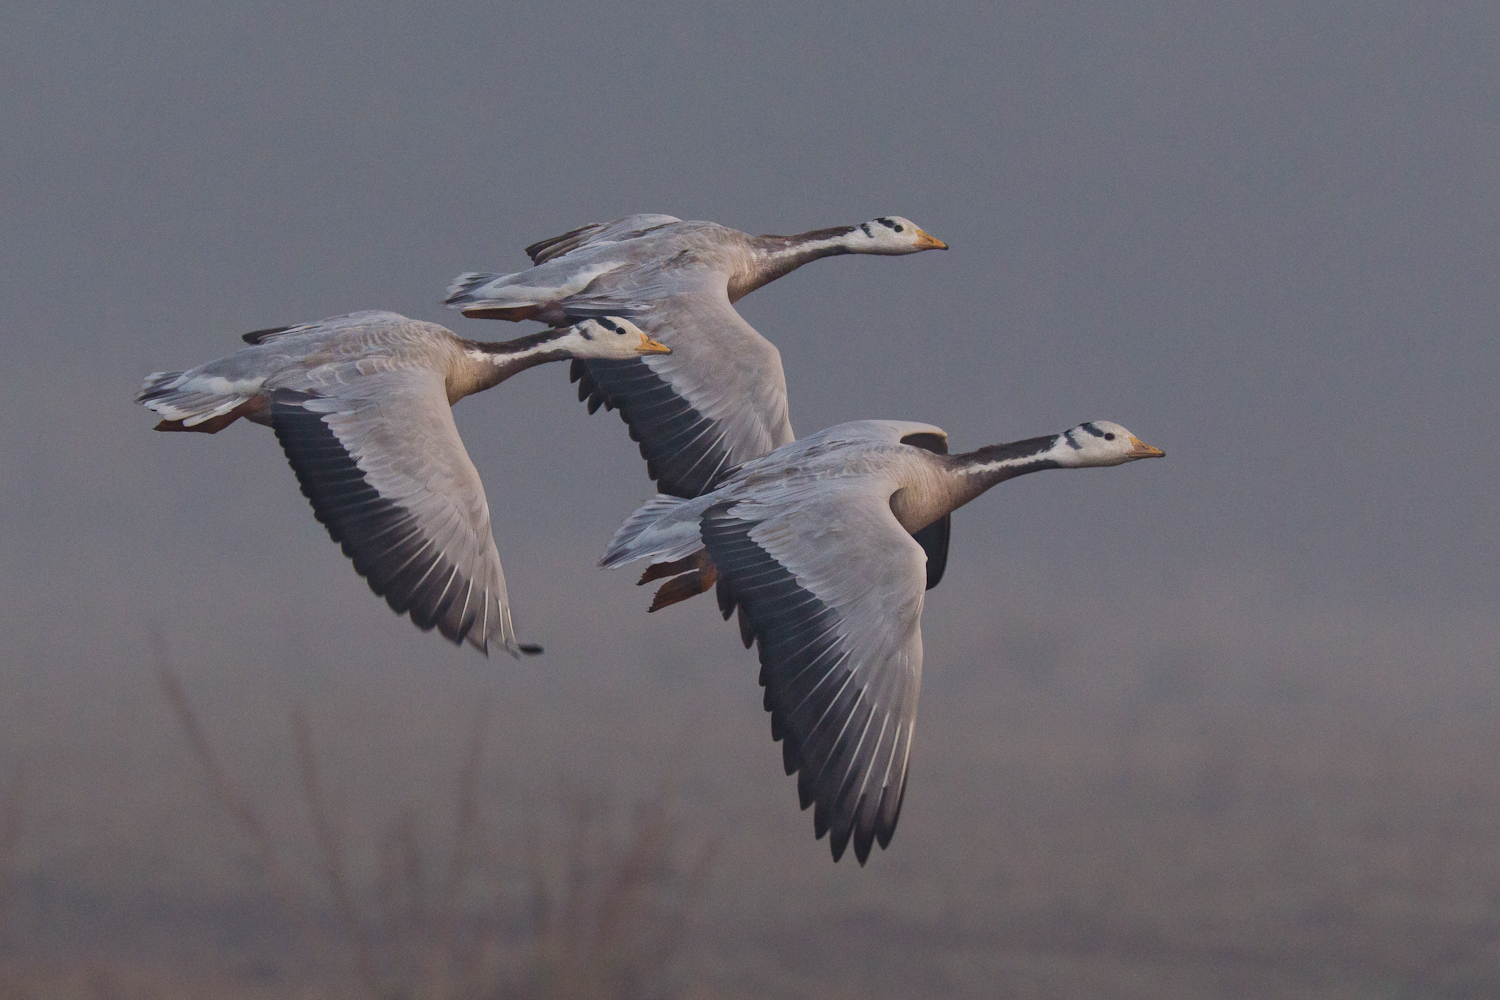 It was a misty,foggy morning at Keoladeo Ghana National Park,Bharatpur..a group of bar-headed geese was foraging near by..all on a sudden they took off together..